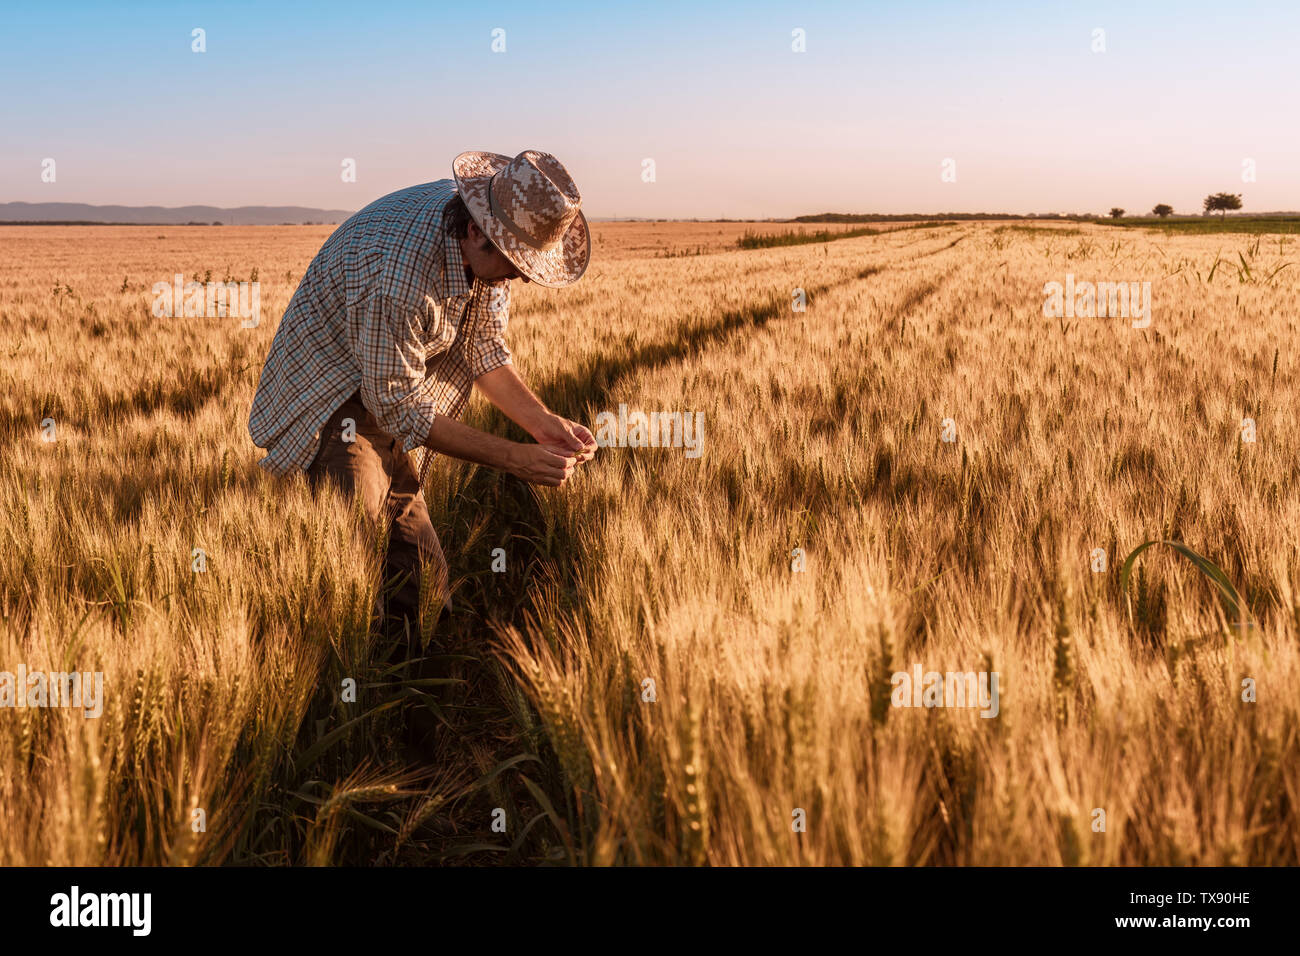 Agronomist farmer is inspecting ripening ears of wheat in field in warm summer sunset. Farm worker analyzing development of cereal crops. Stock Photo